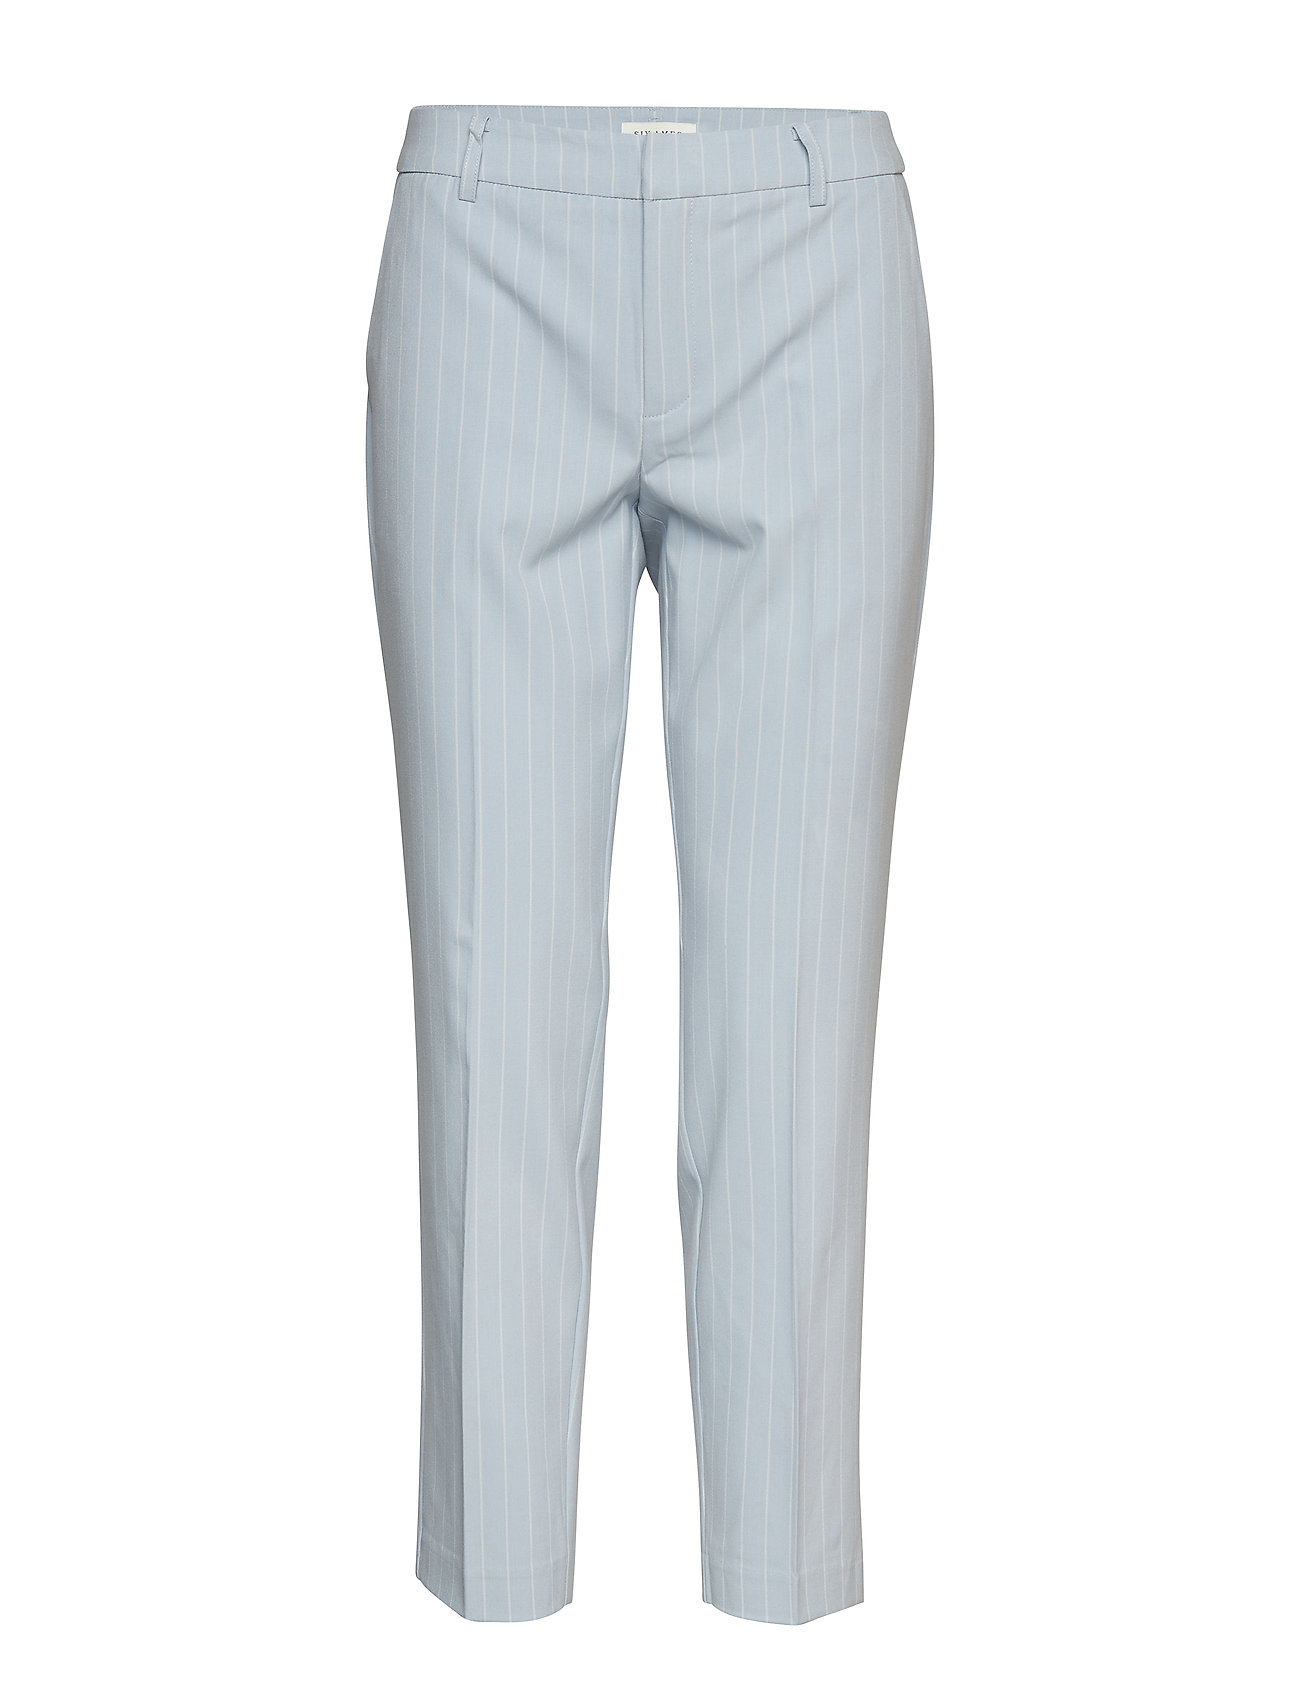 Six Ames CLAUDIA - SKY BLUE PINSTRIPE